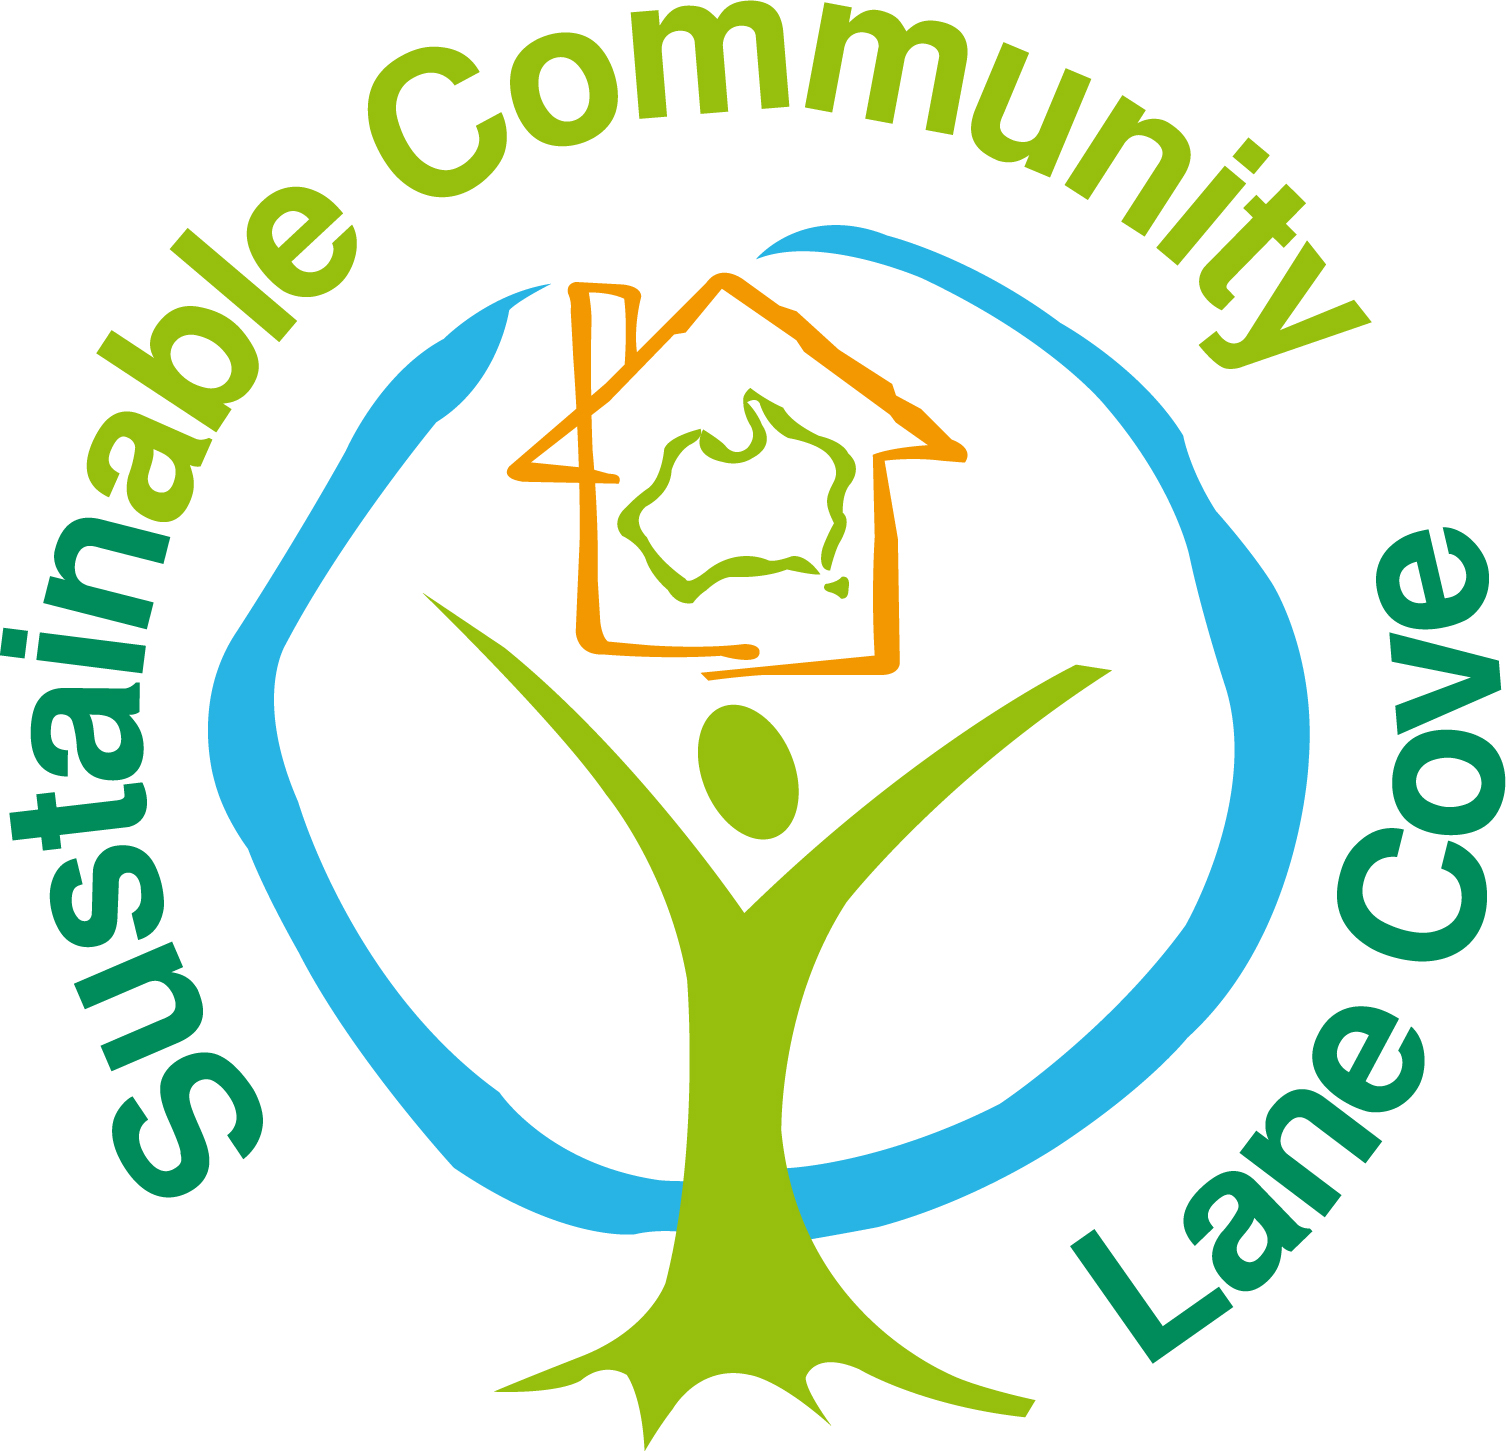 Sustainability Logo - Lane Cove Sustainable Community - to be used from October 2008 - Colour JPEG(2).JPG